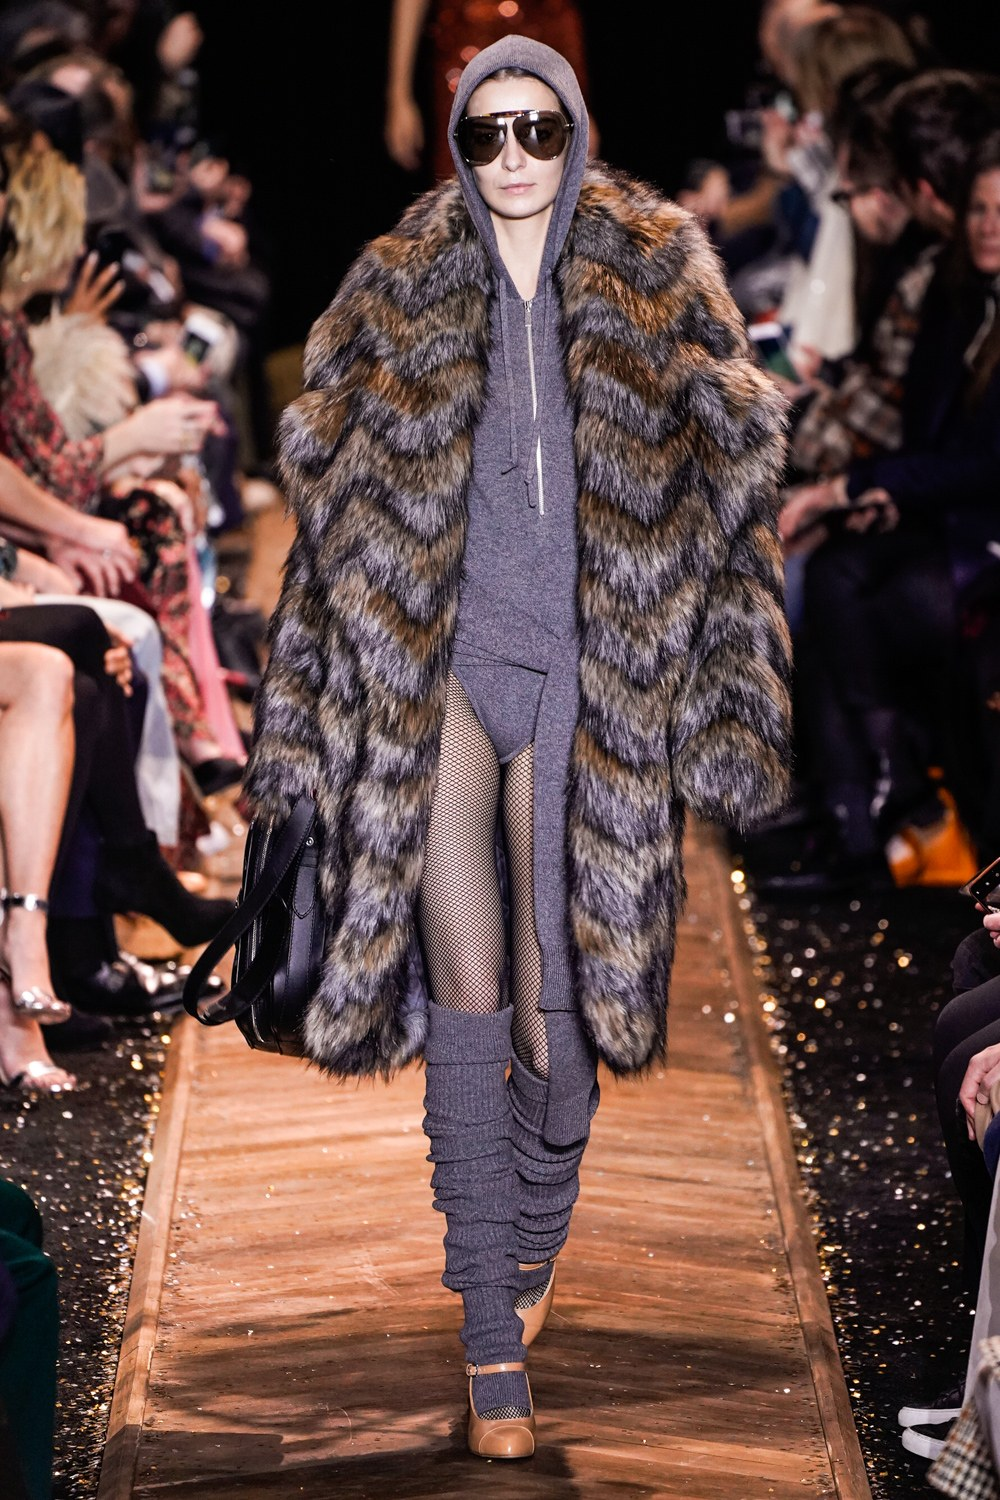 MICHAEL KORS COLLECTION, COURTESY VOGUE RUNWAY